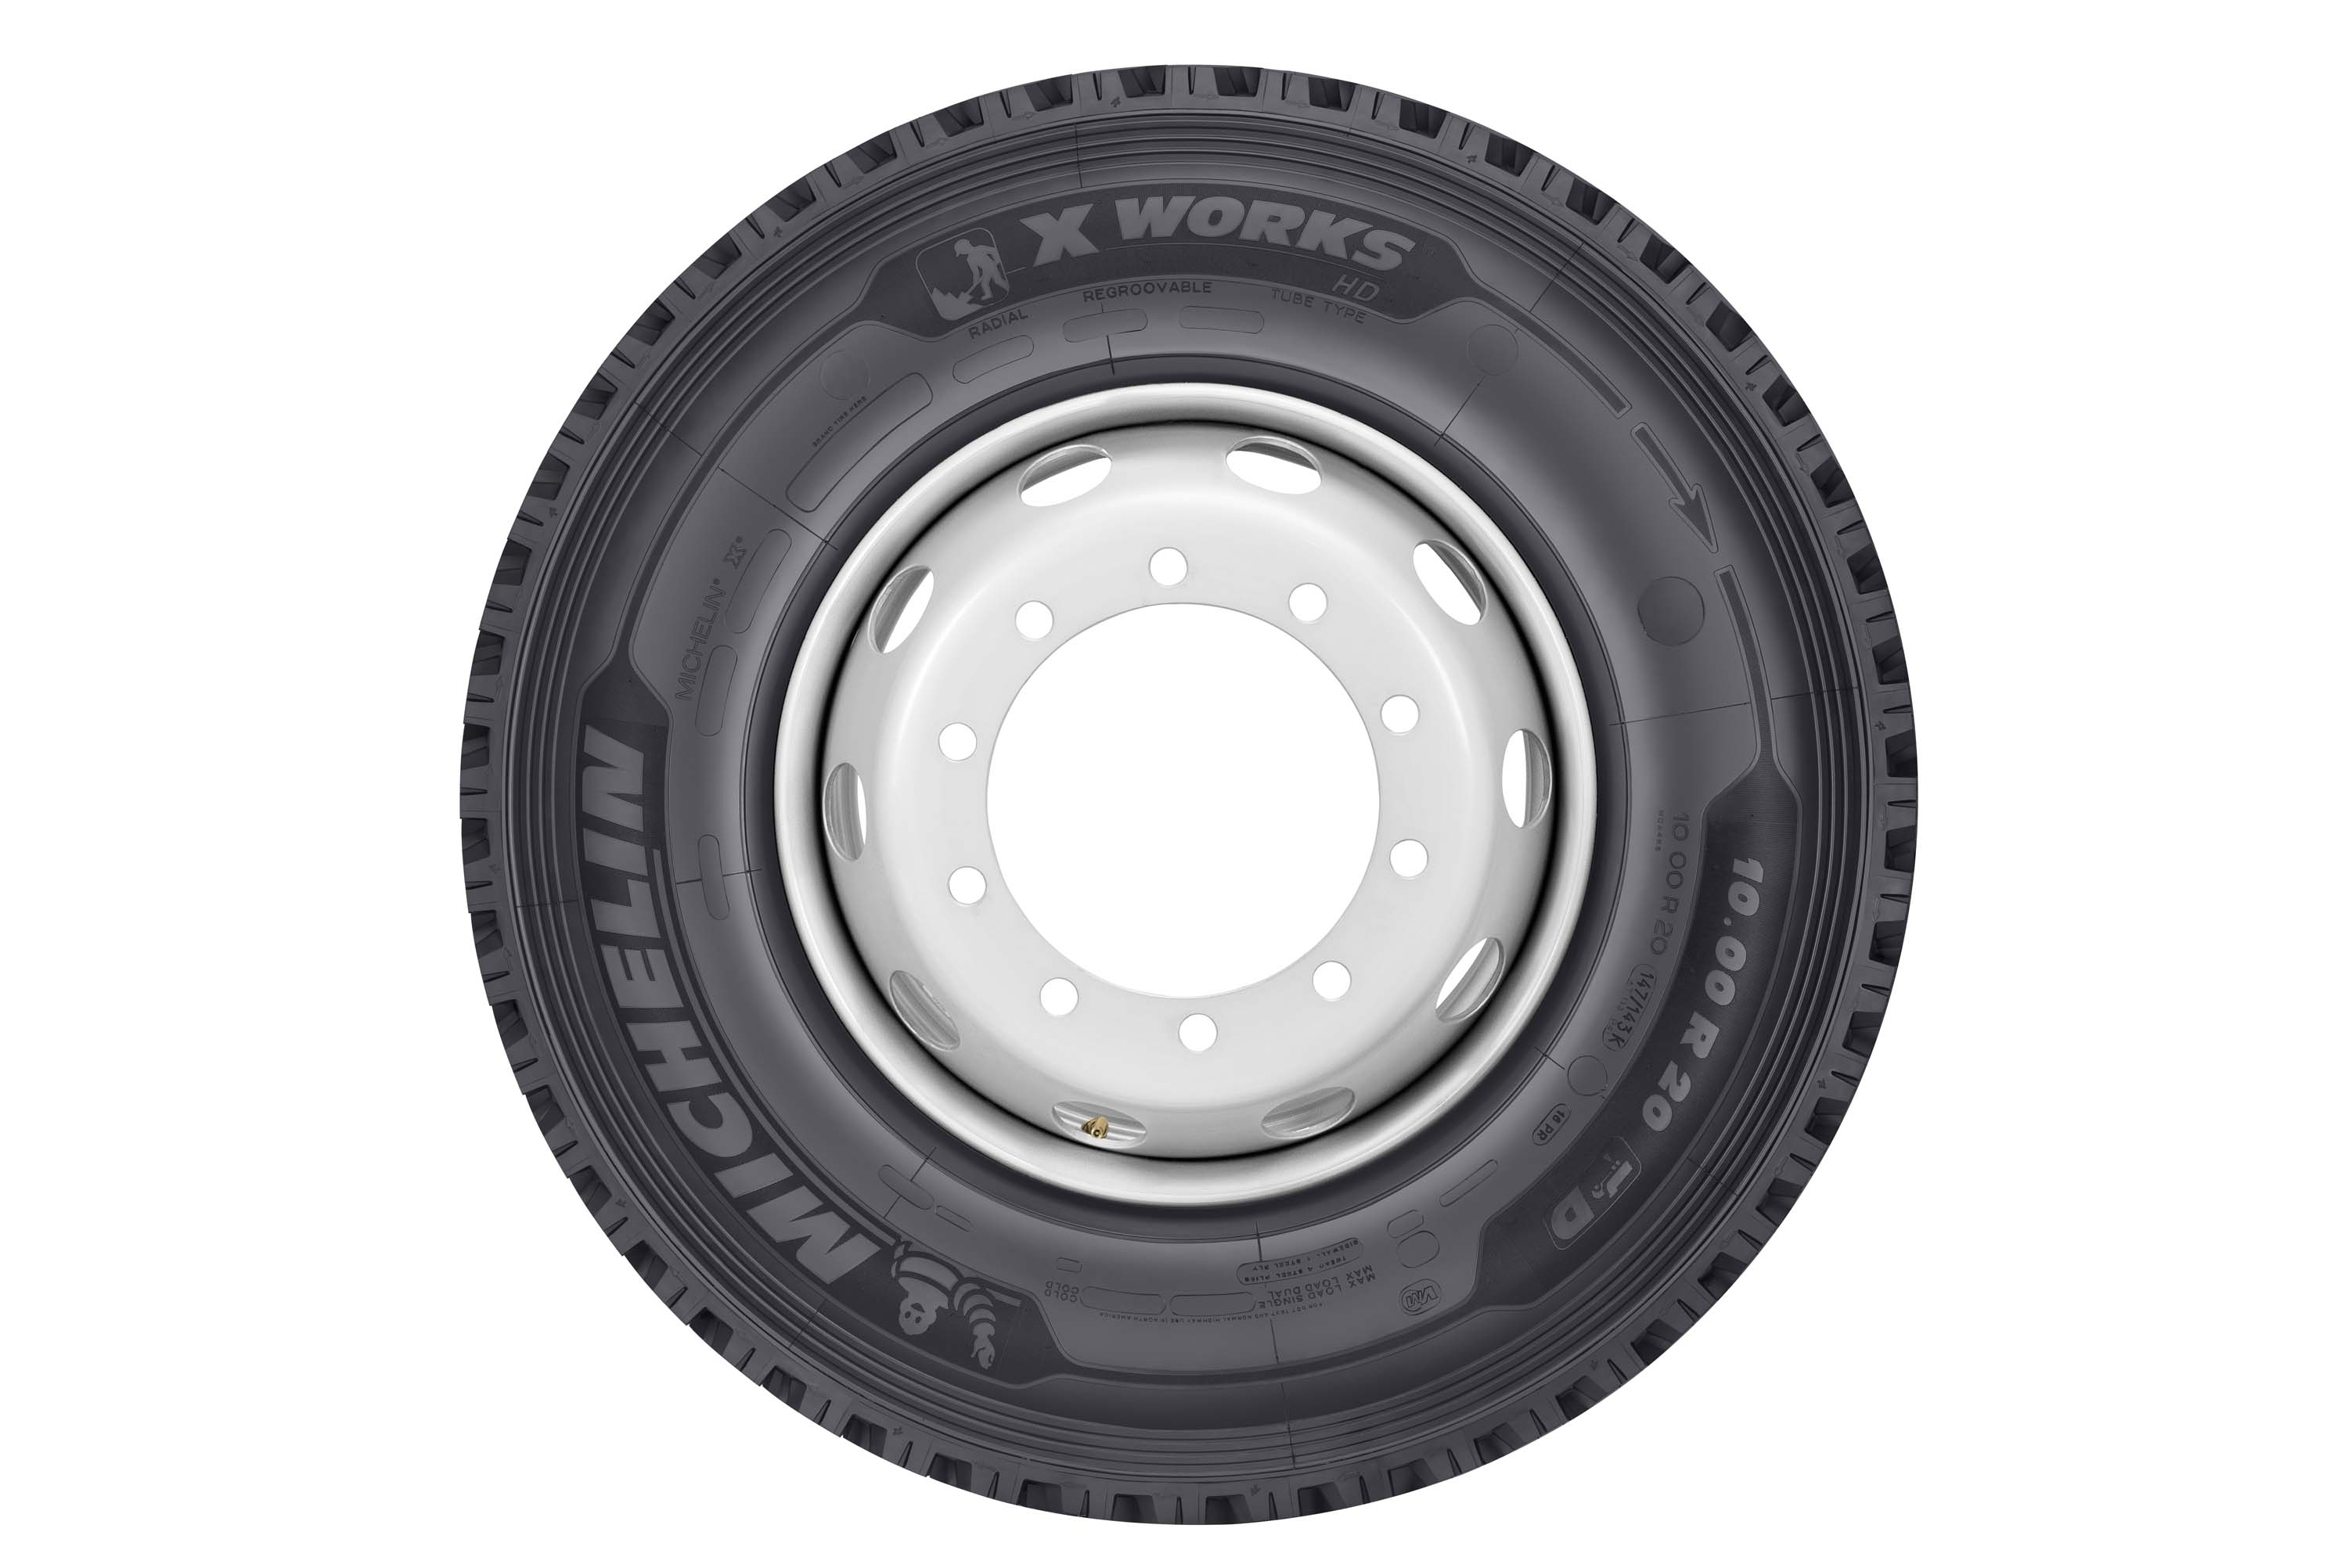 https://www.thrustzone.com/wp-content/uploads/2017/08/MICHELIN-X®-WORKS™-HD-D-drive-axle-1.jpg